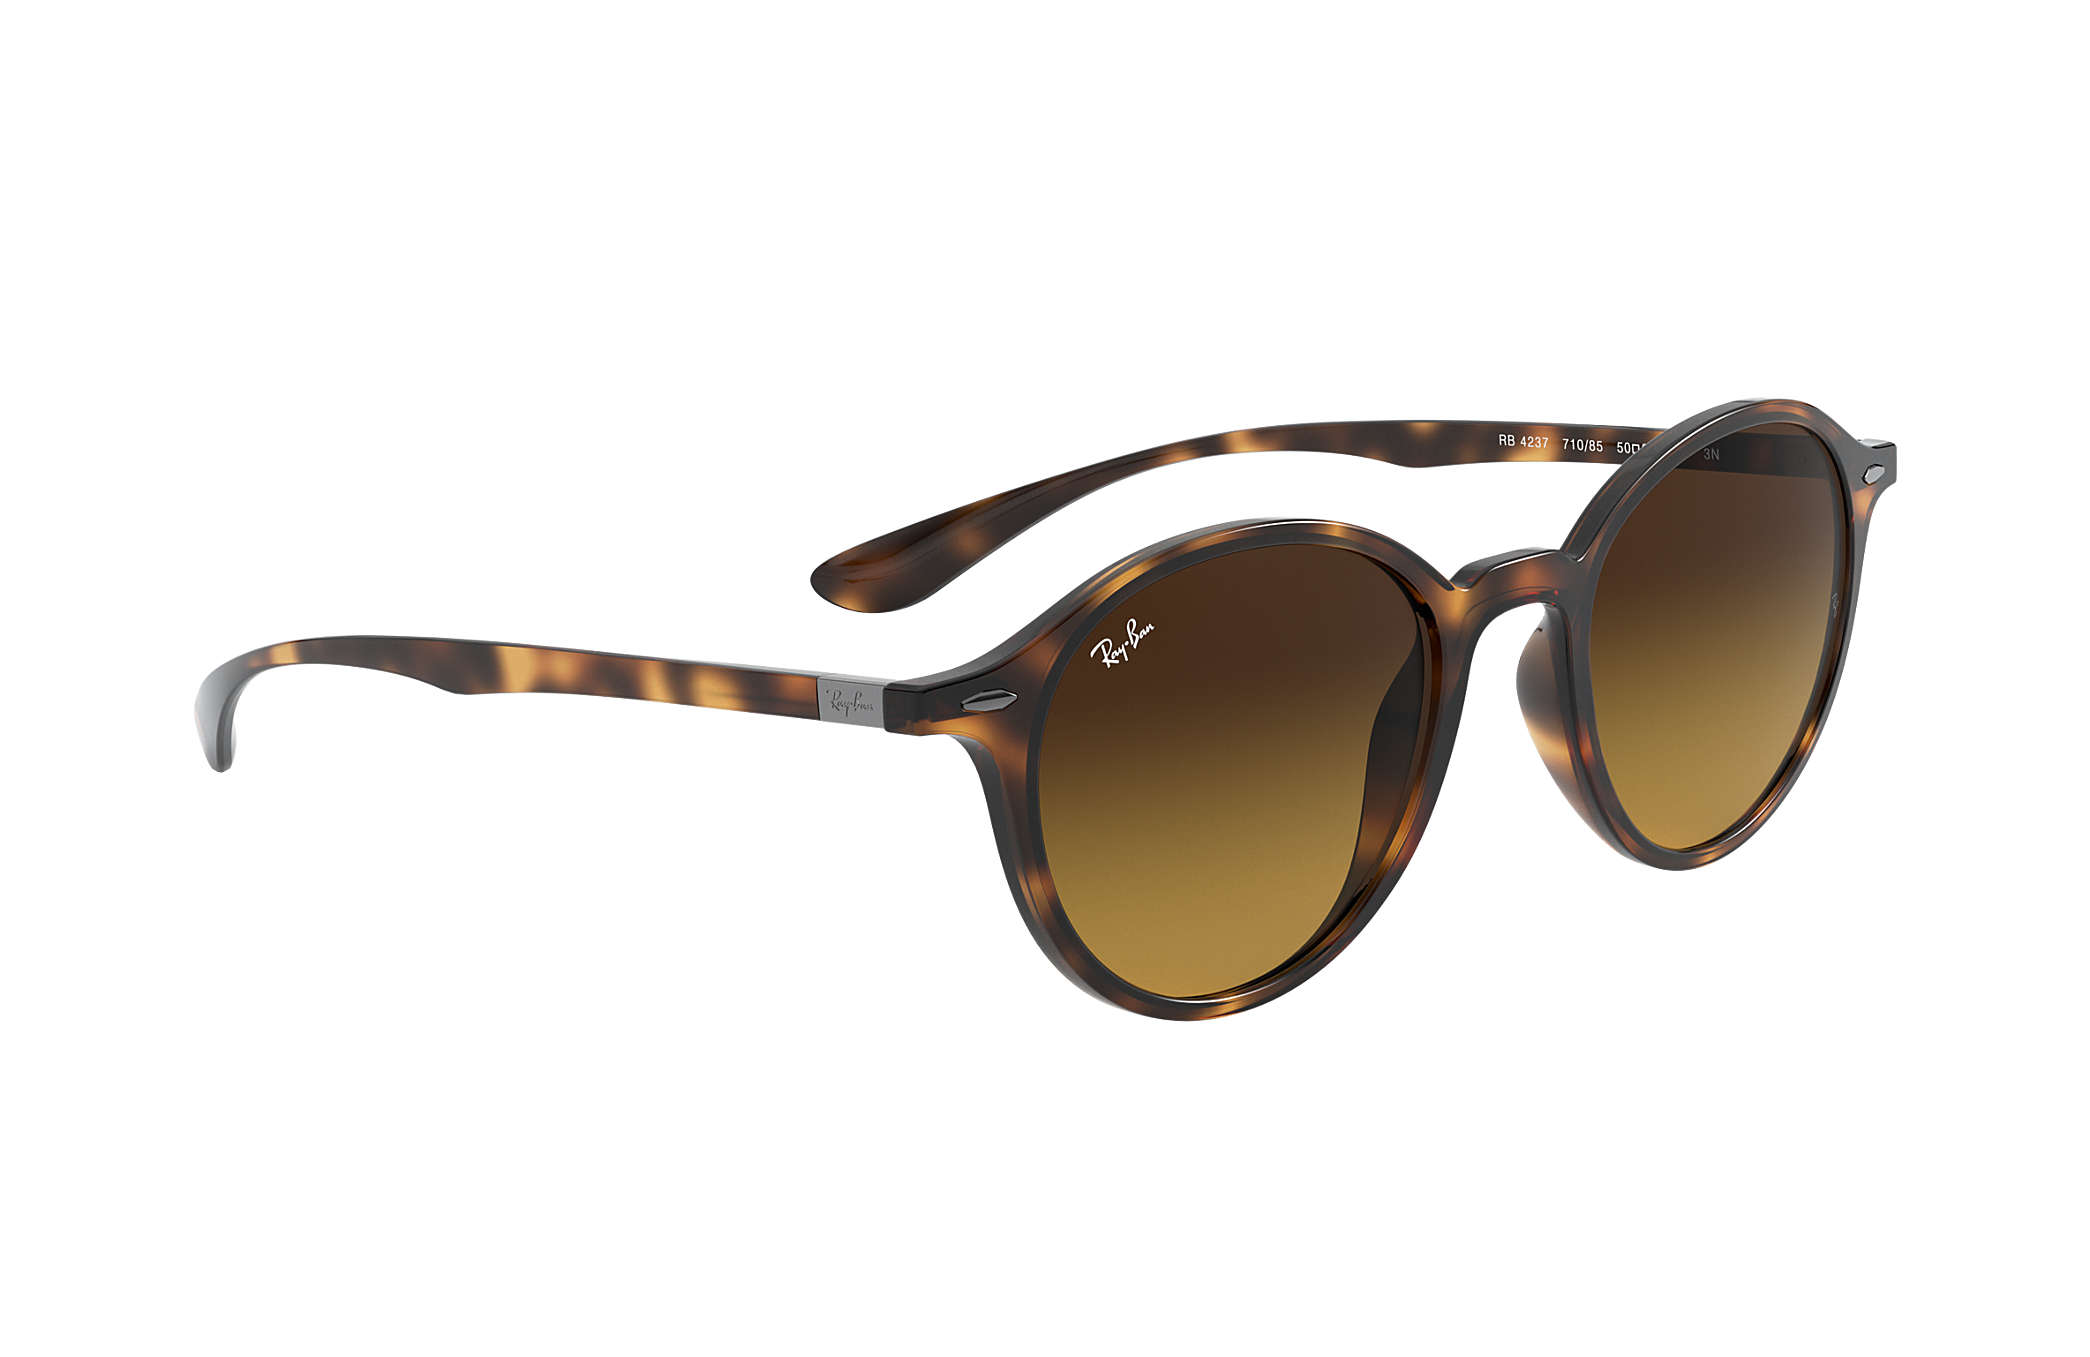 5e2bcdc0416aa Ray-Ban Round Liteforce RB4237 Tortoise - Liteforce - Brown Lenses ...